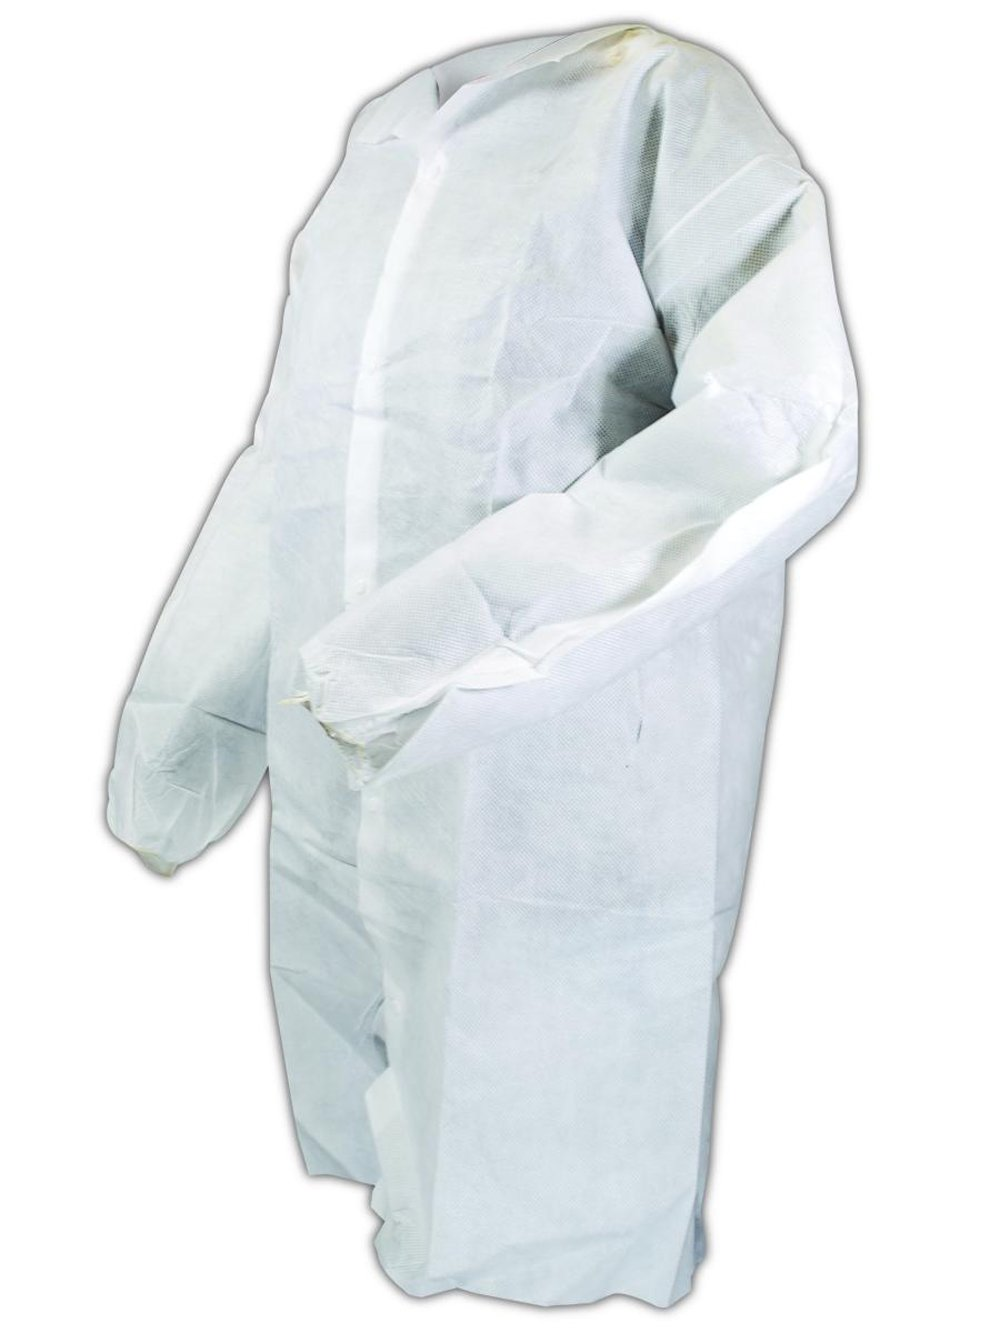 Magid C8L EconoWear Lite N Kool SMS Disposable Lab Coat with Snap Front, Large, White (Case of 50) by Magid Glove & Safety (Image #1)